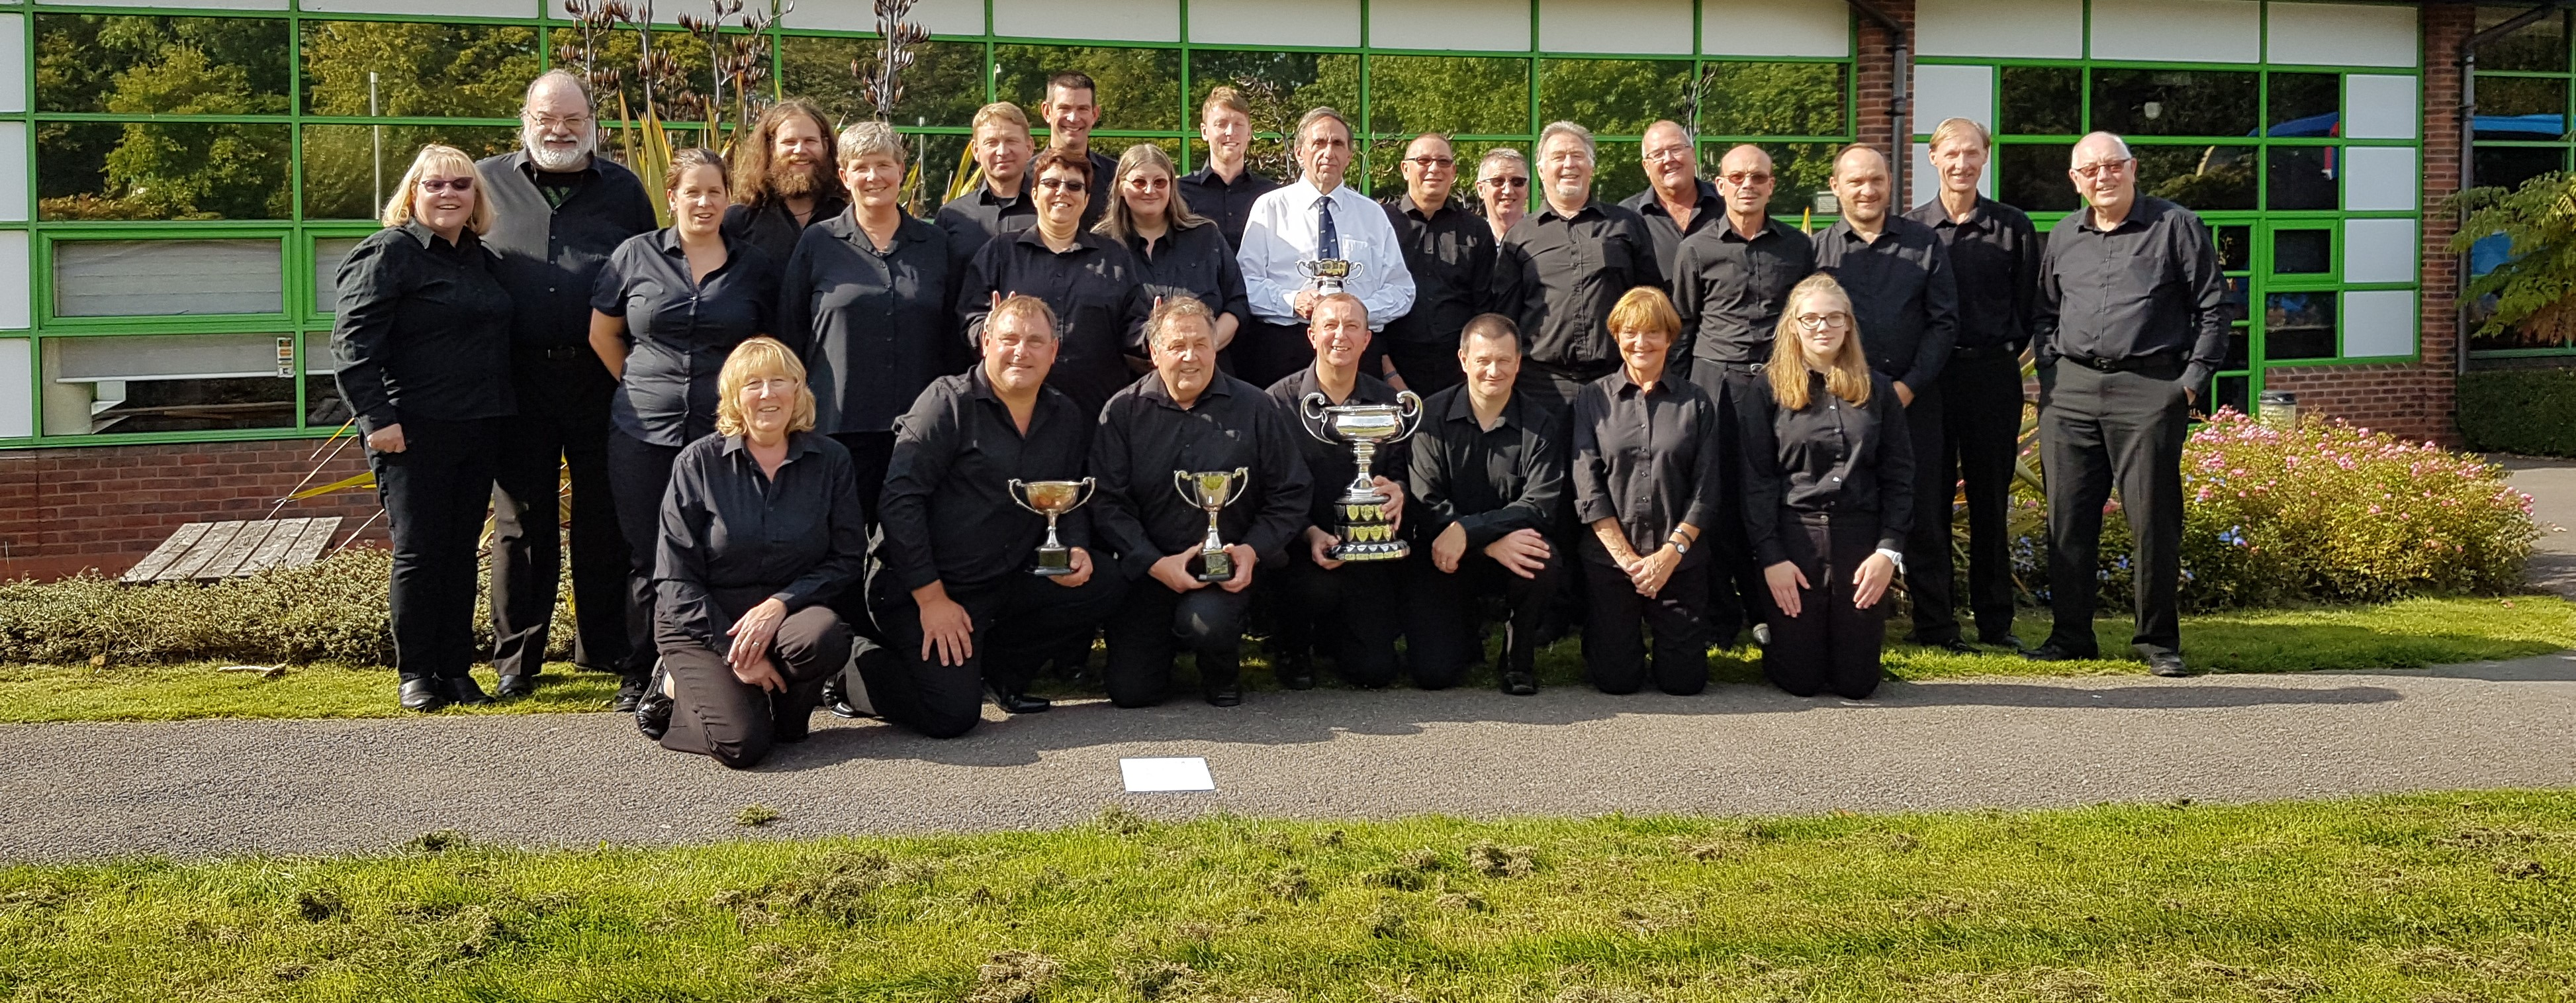 SCABA Autumn Contest - Poole Borough Band win 4 prizes including Best Test Piece